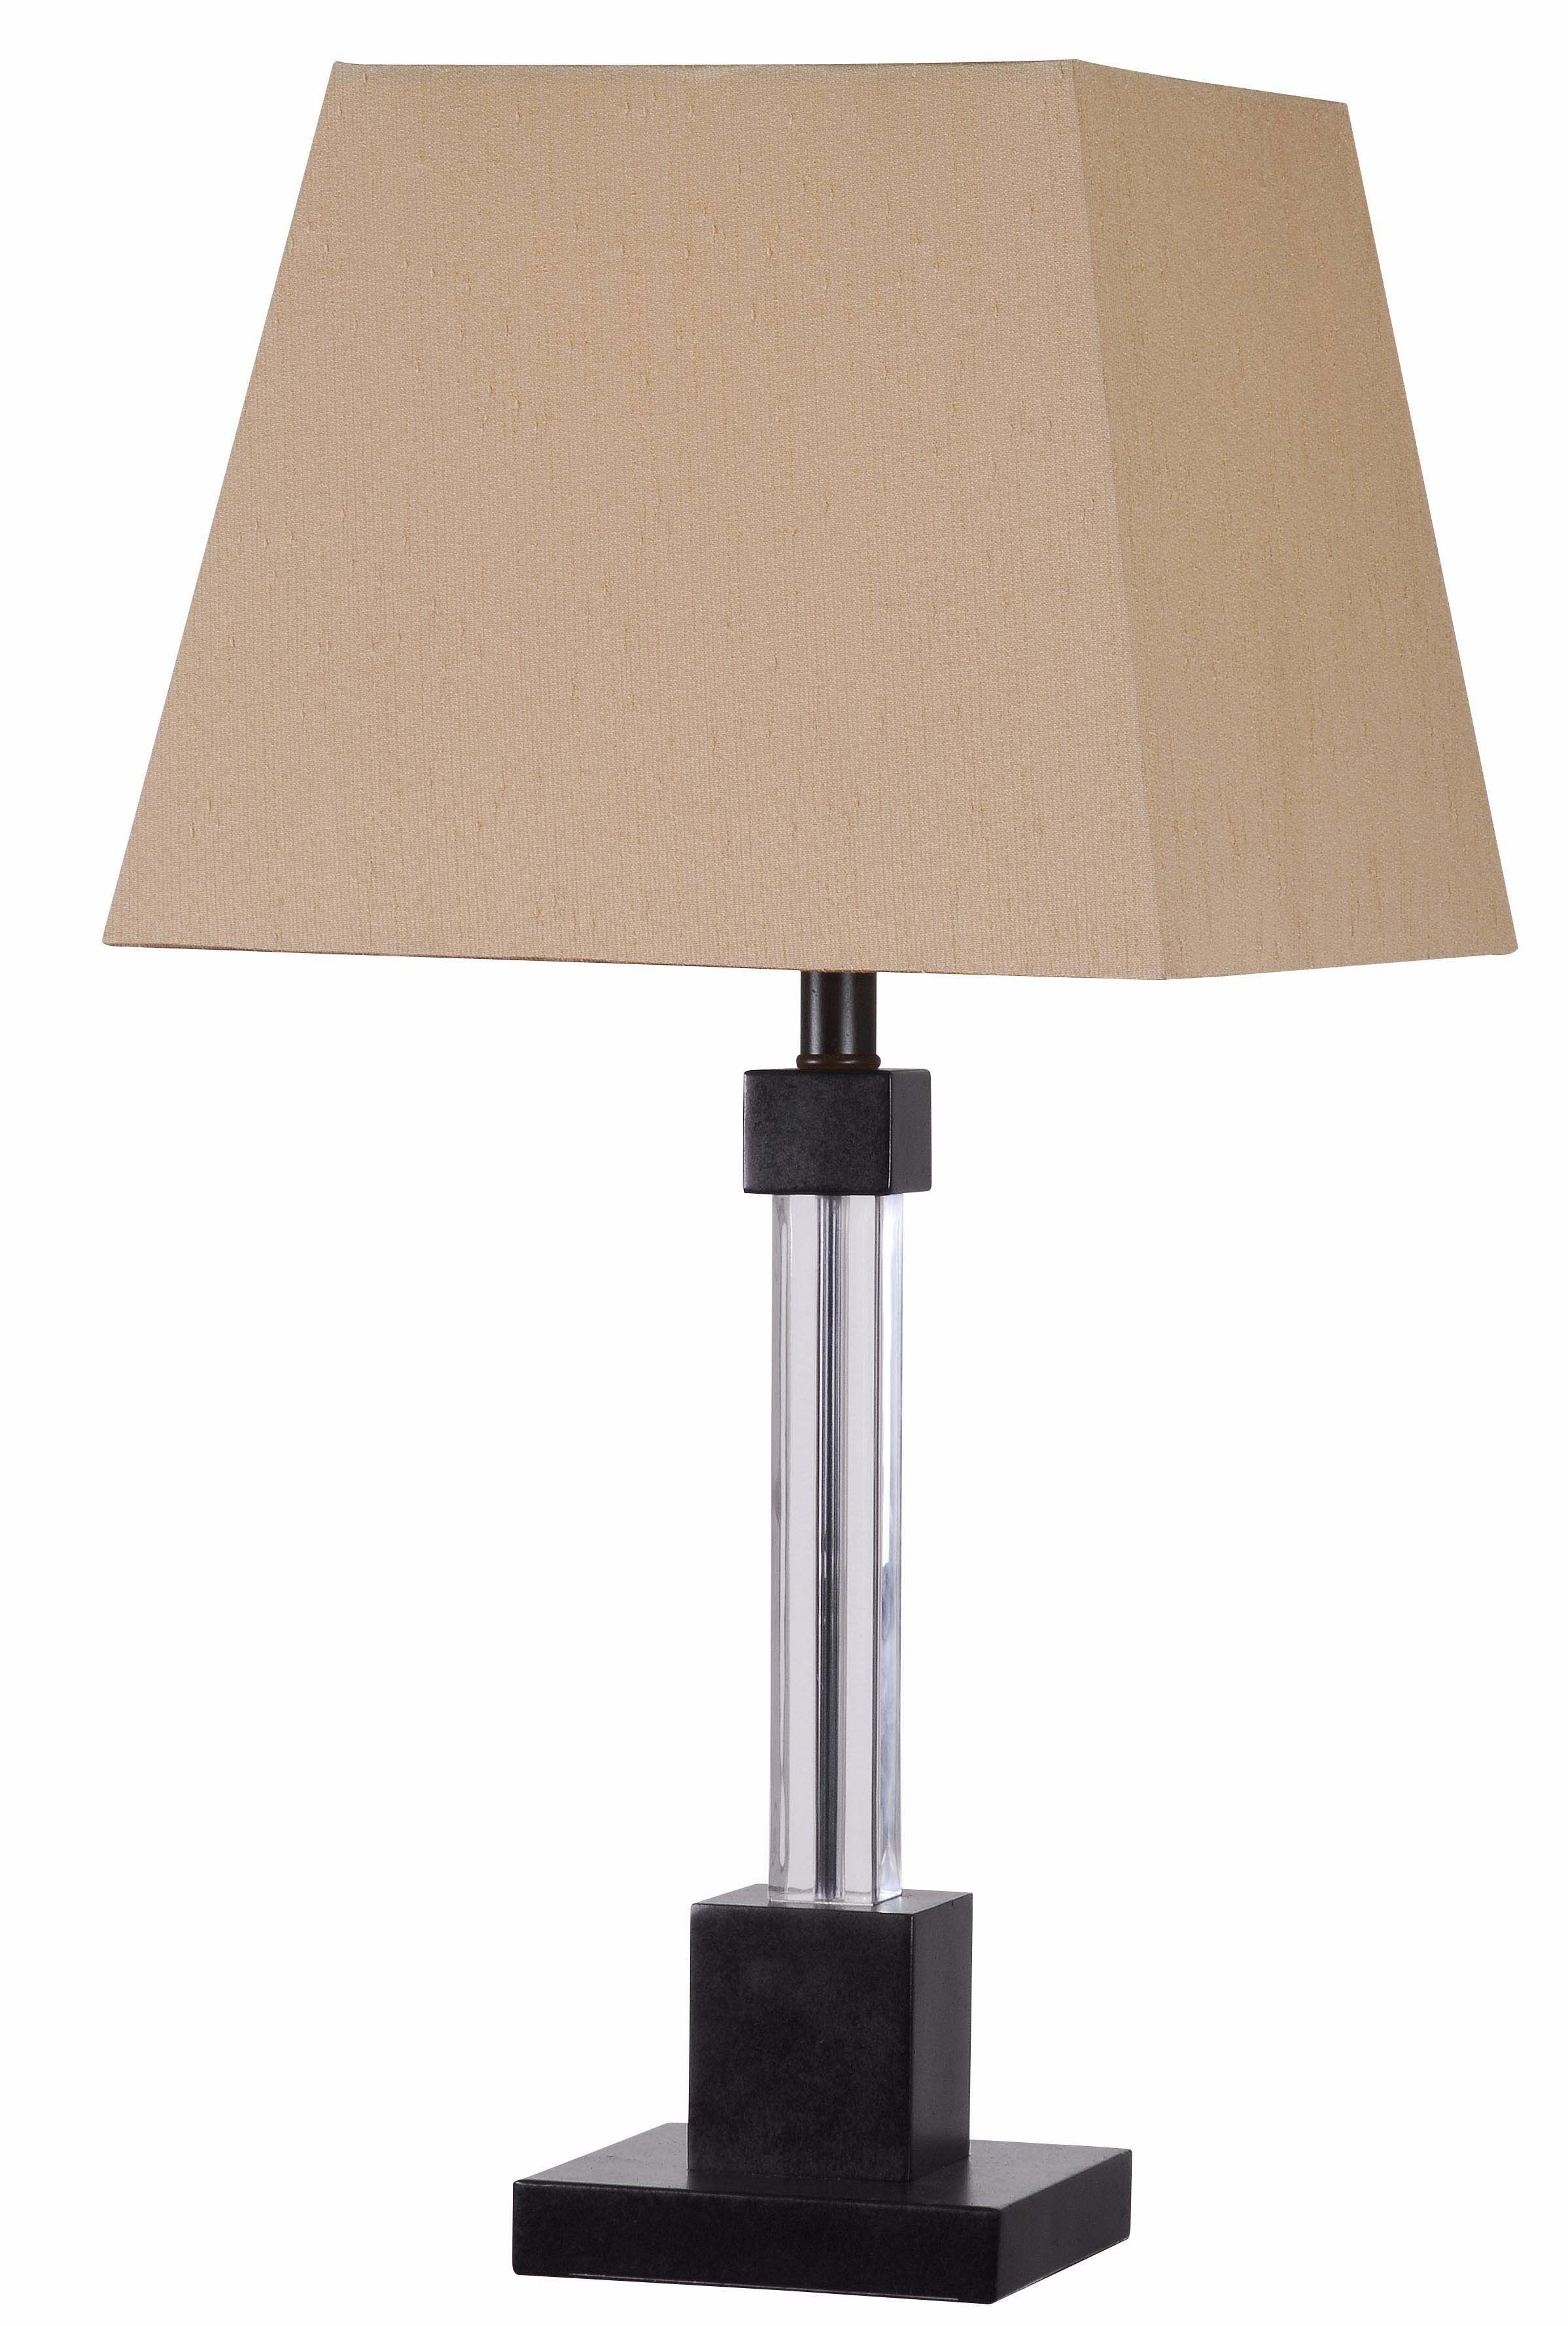 spire oil rubbed bronze table lamp from kenroy 32482orb coleman. Black Bedroom Furniture Sets. Home Design Ideas